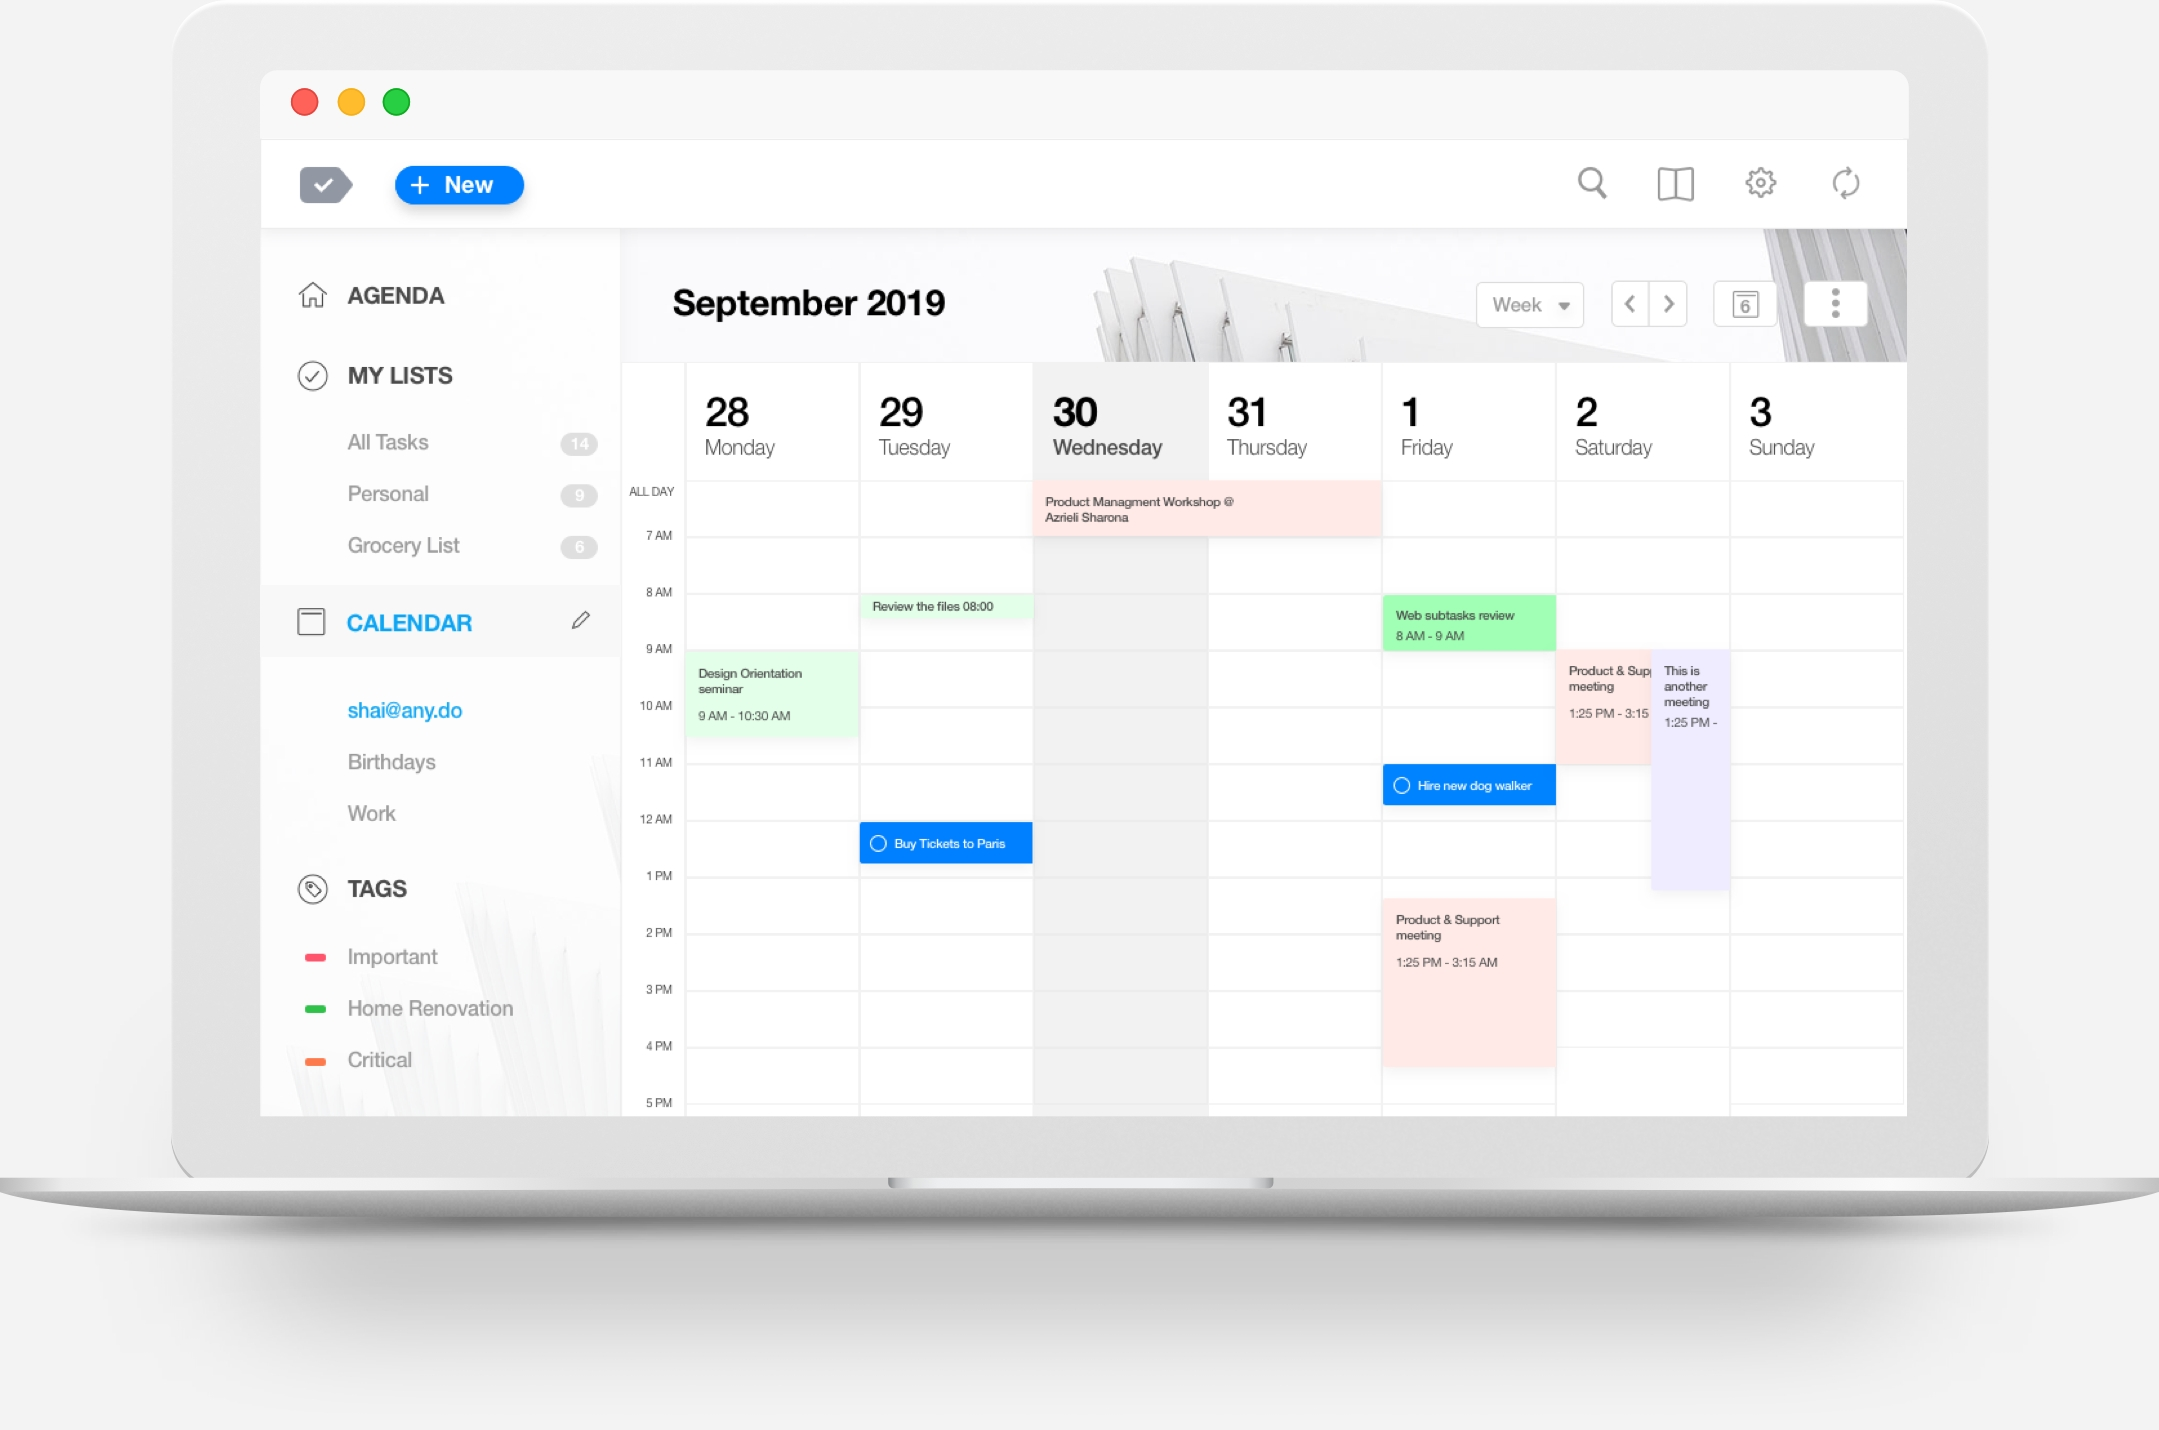 The Best Calendar App For Desktop Anydo